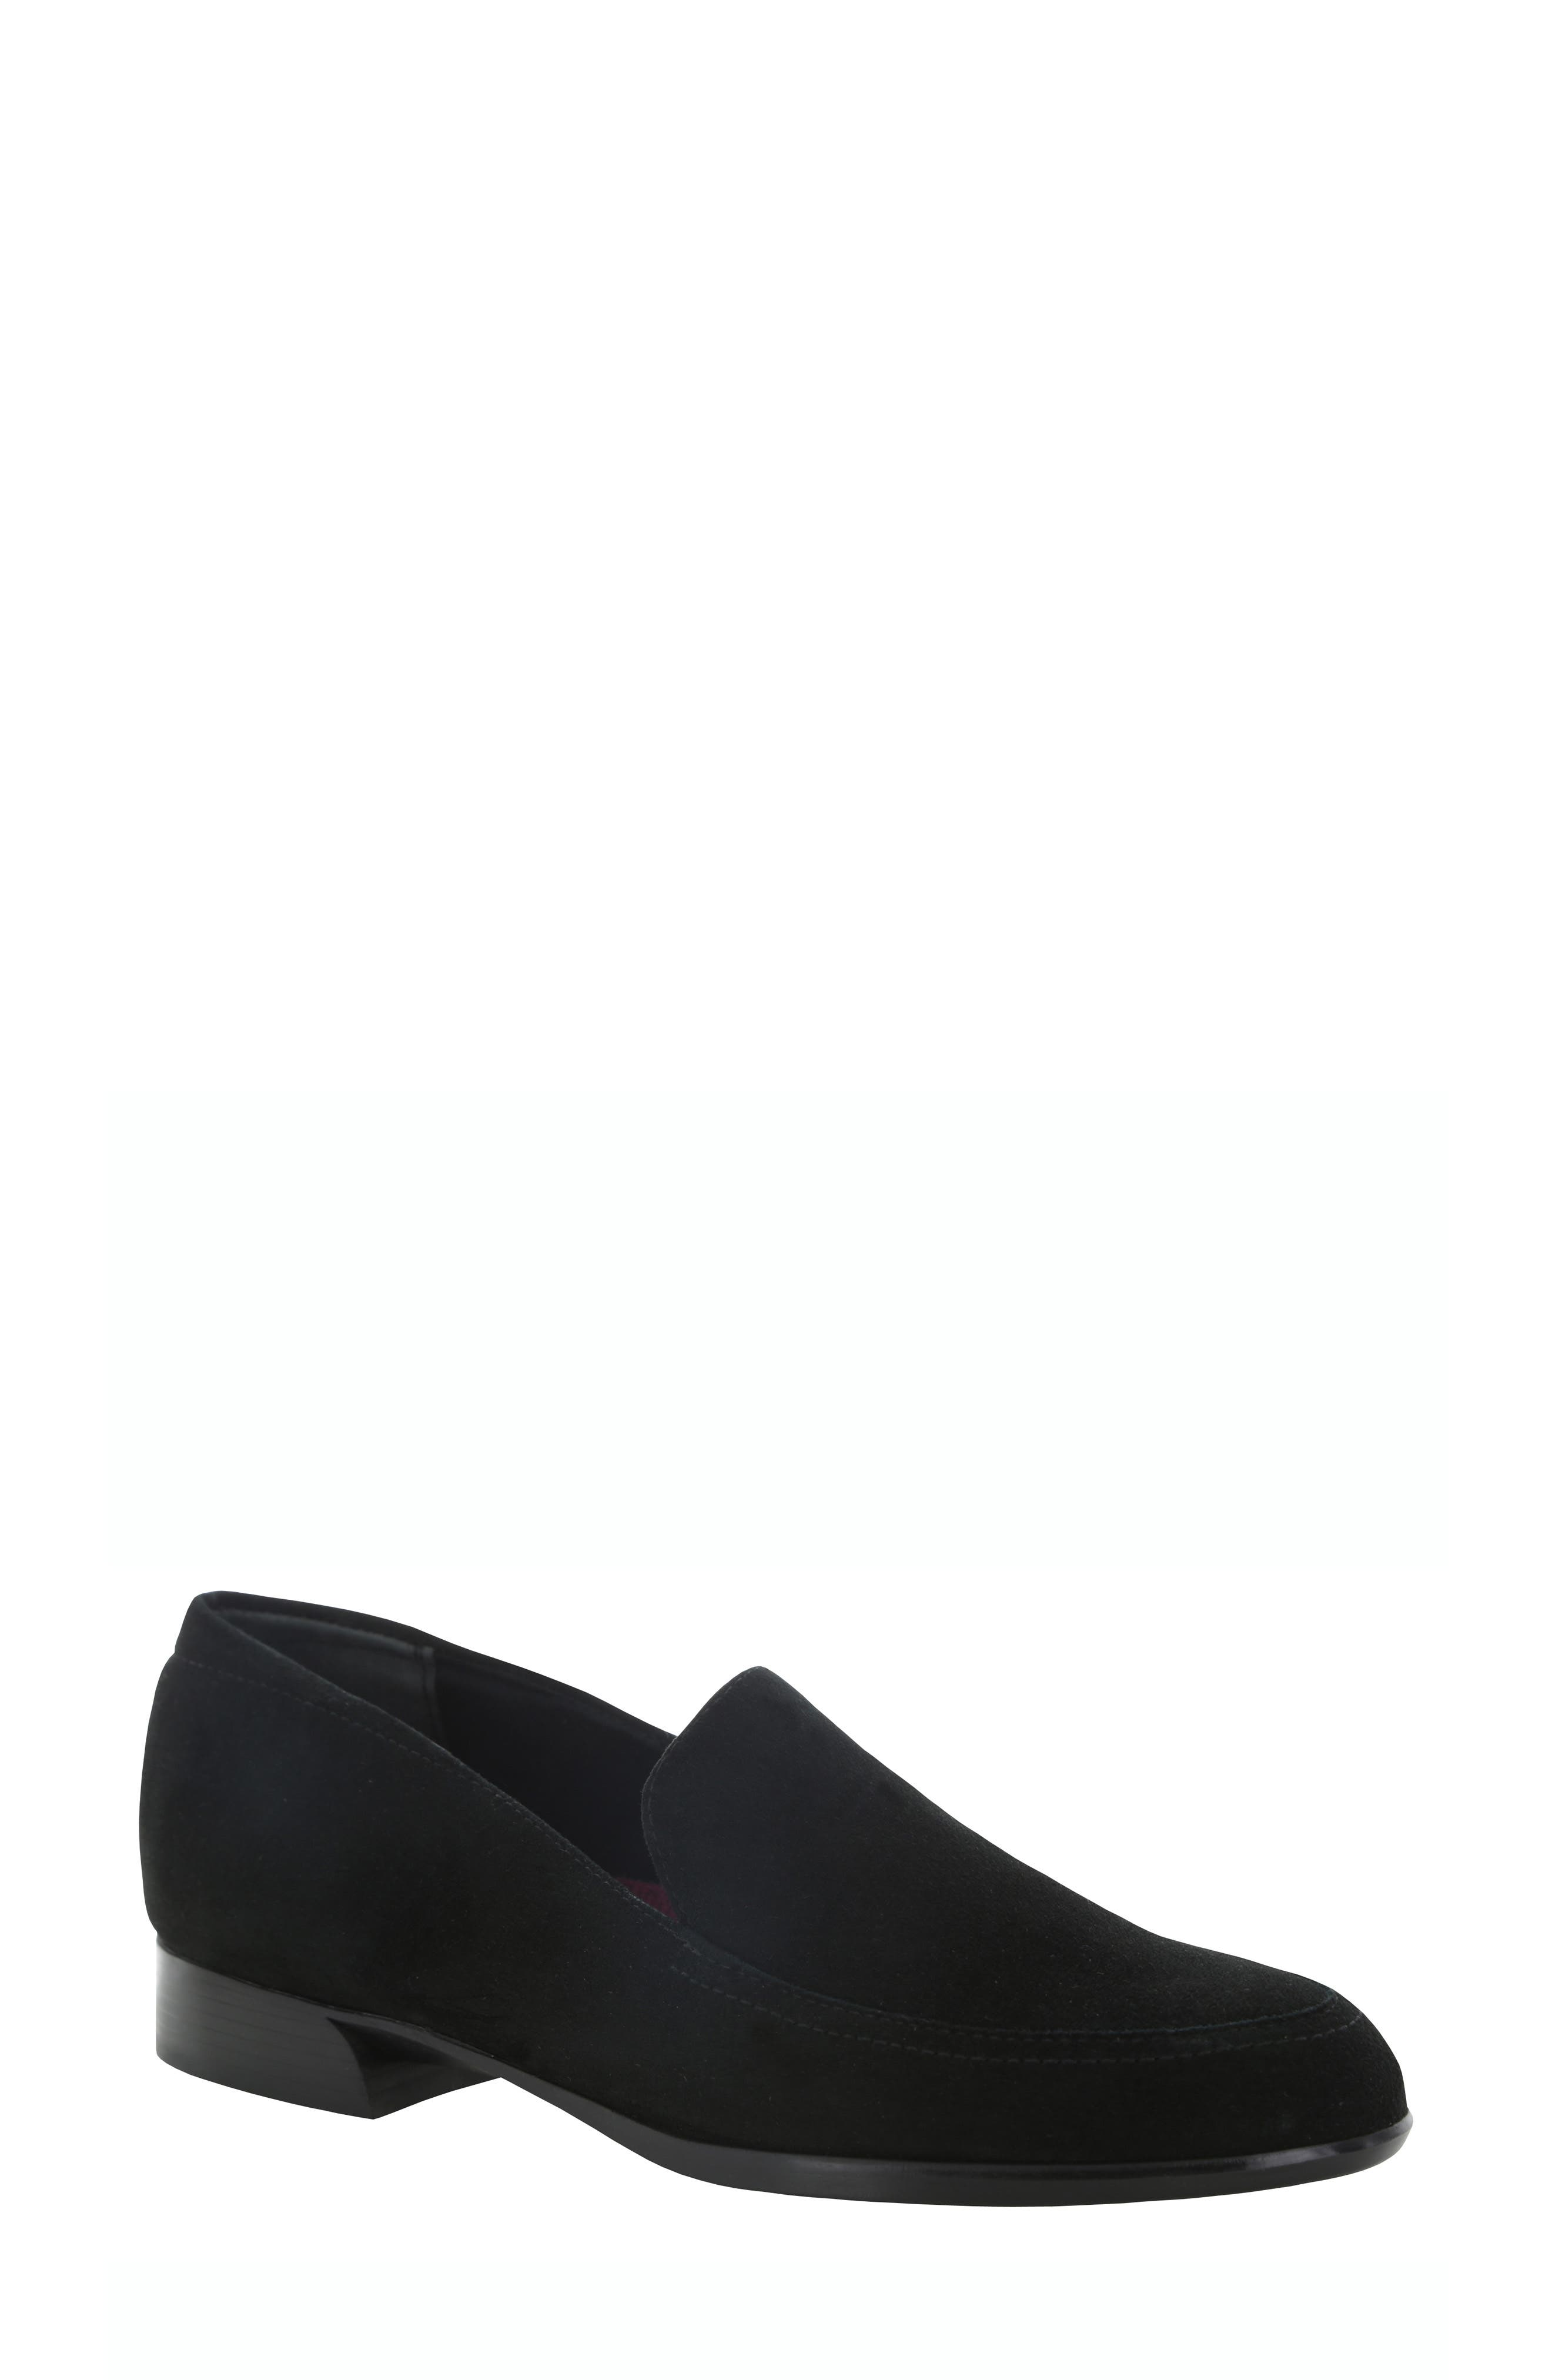 Harrison Loafer,                             Main thumbnail 1, color,                             BLACK SUEDE